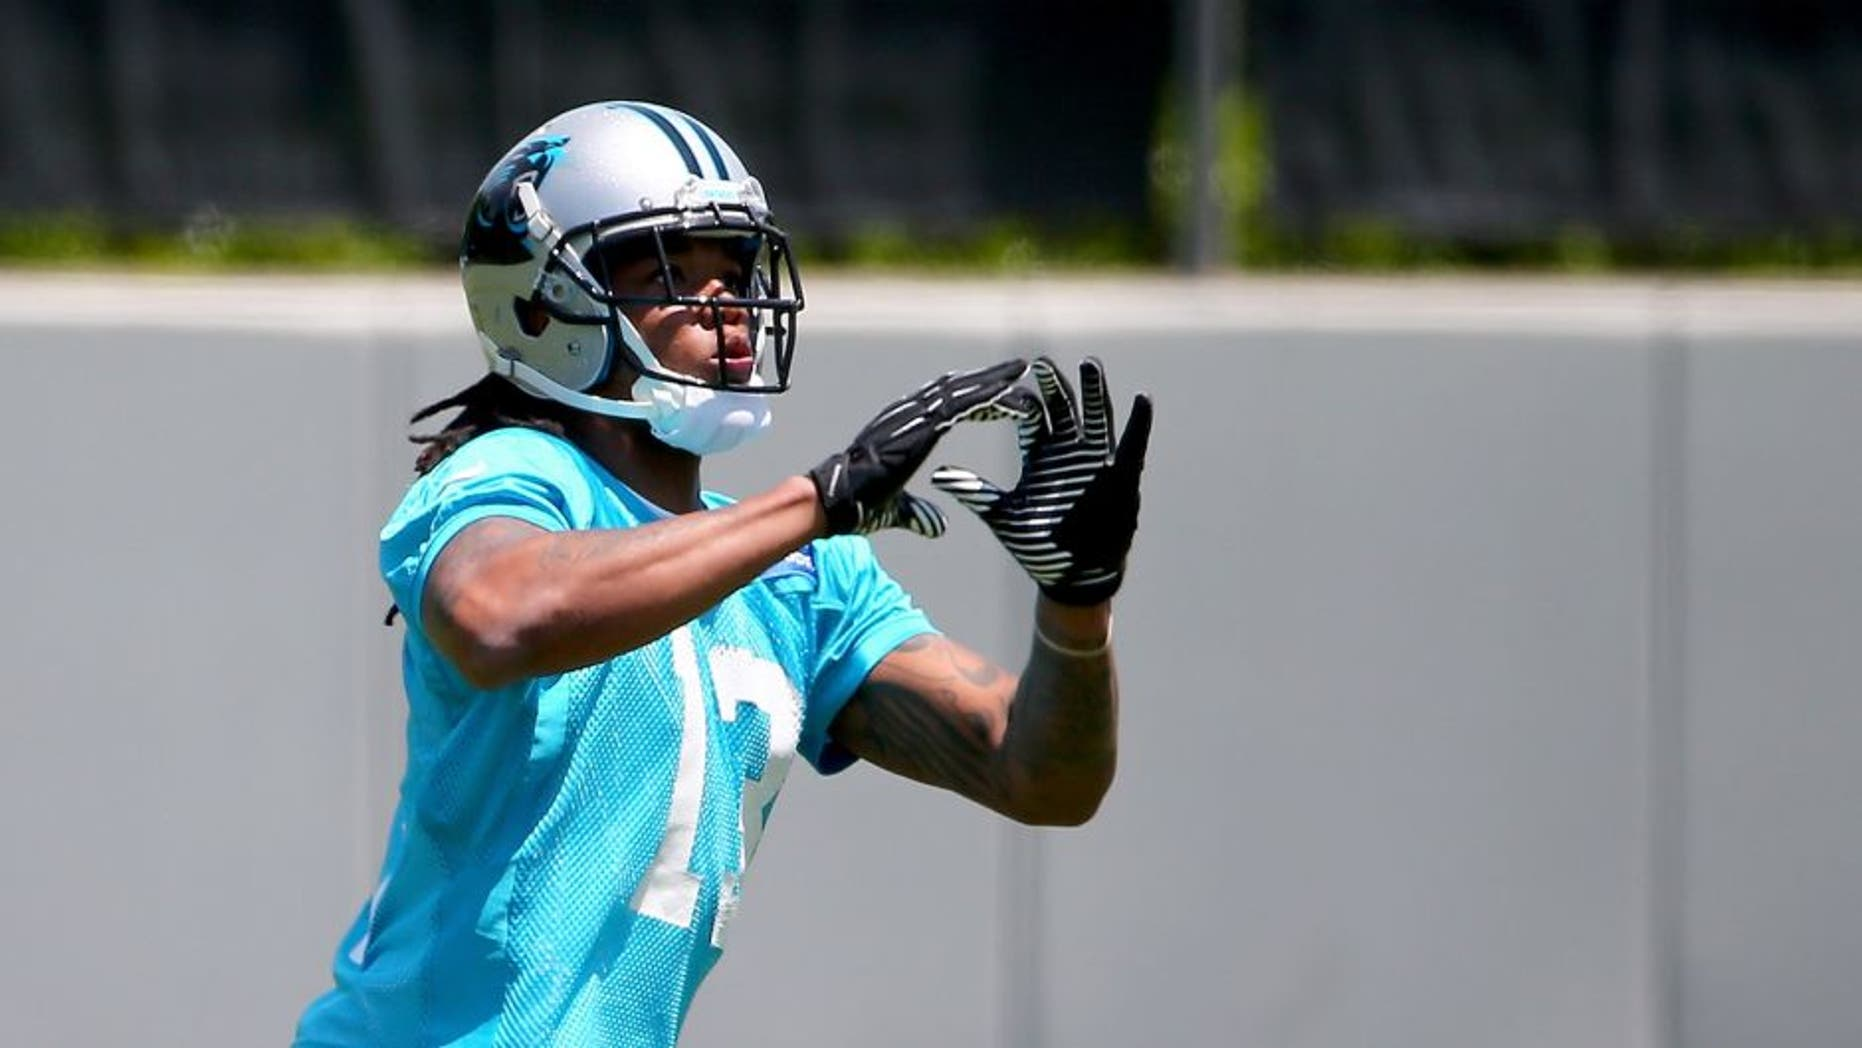 CHARLOTTE, NC - MAY 17: Kelvin Benjamin #13 of the Carolina Panthers during the Carolina Panthers Rookie Minicamp at Bank of America Stadium on May 17, 2014 in Charlotte, North Carolina. (Photo by Streeter Lecka/Getty Images)